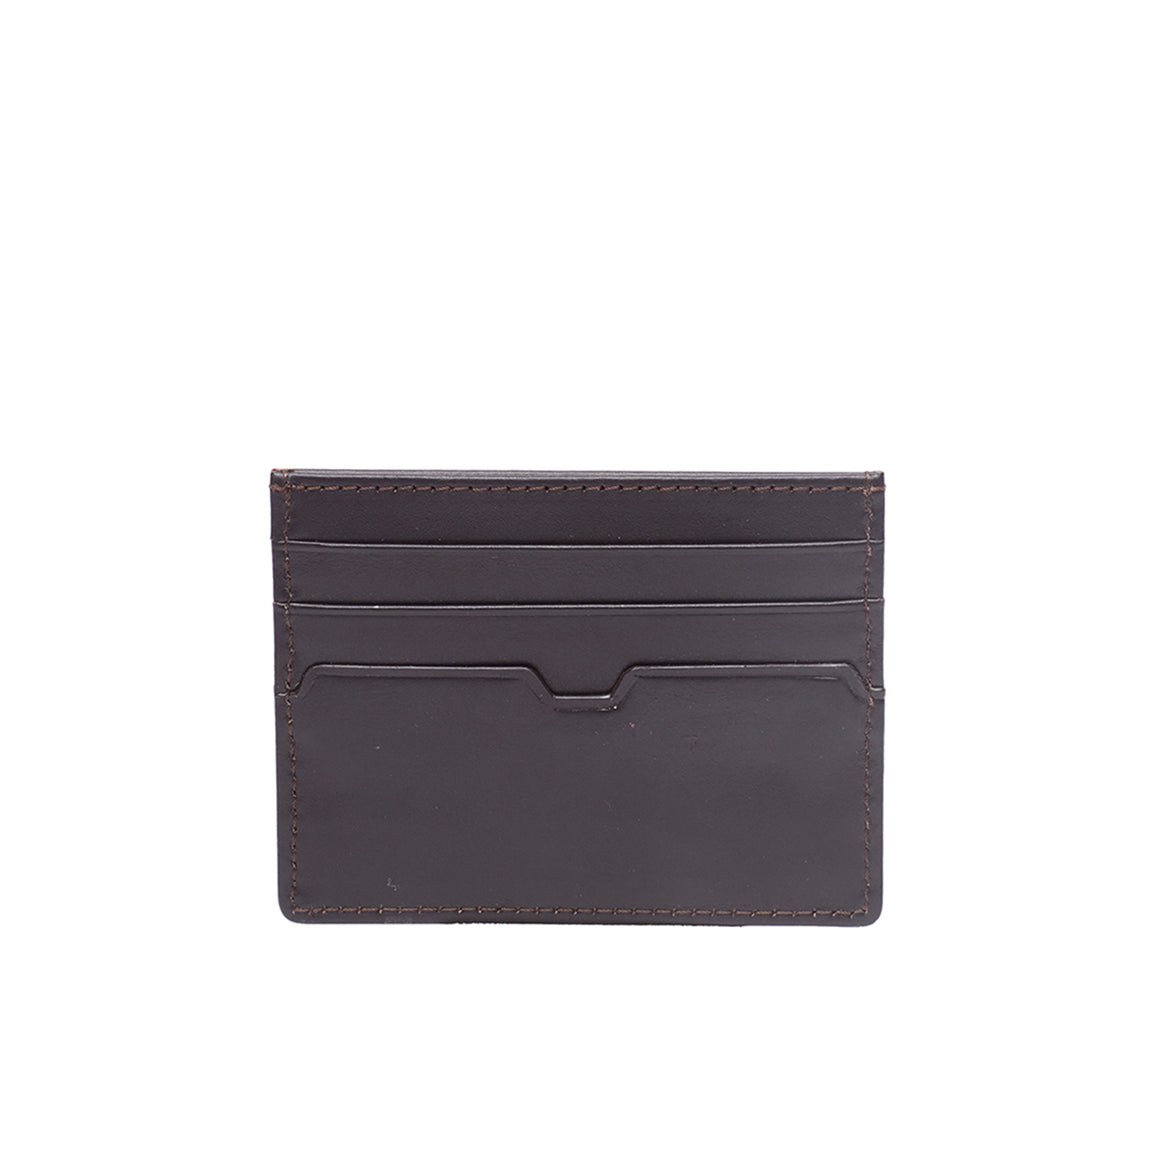 WT 0035 - TOHL ZELO MEN'S CARD HOLDER - DARK BROWN